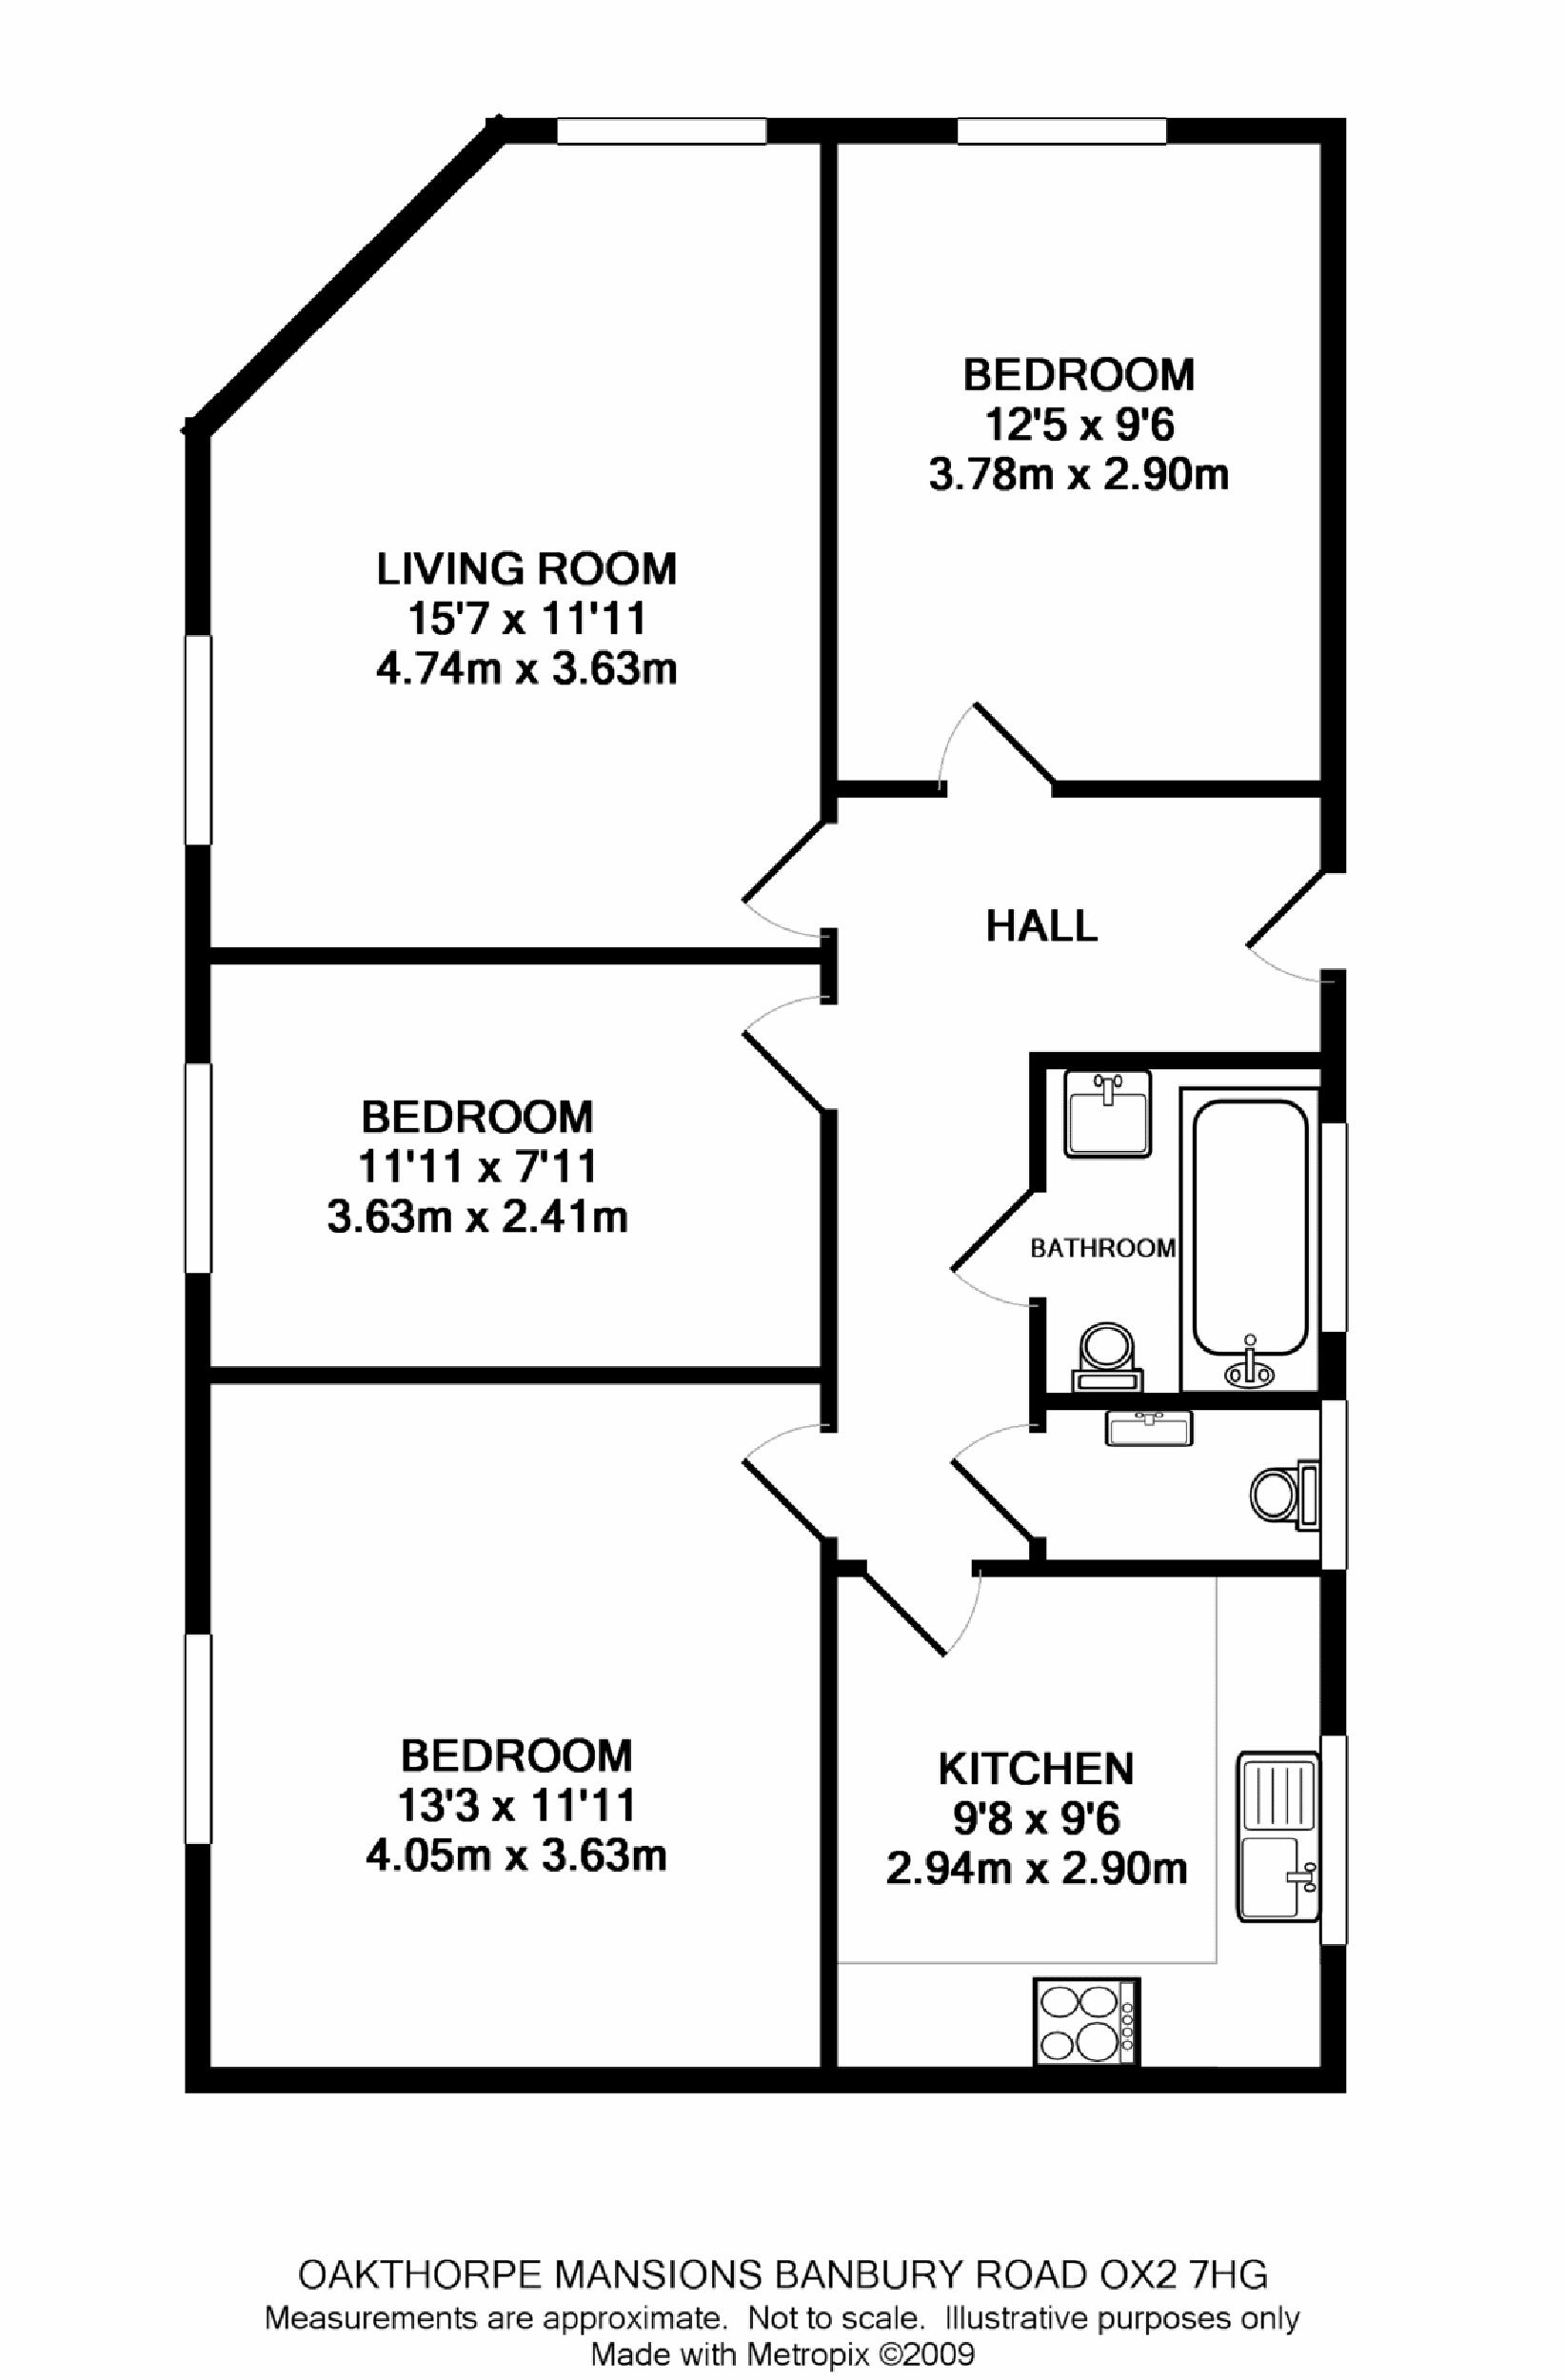 Oakthorpe mansions summertown ox2 ref 3473 oxford for 4 bedroom flat floor plan